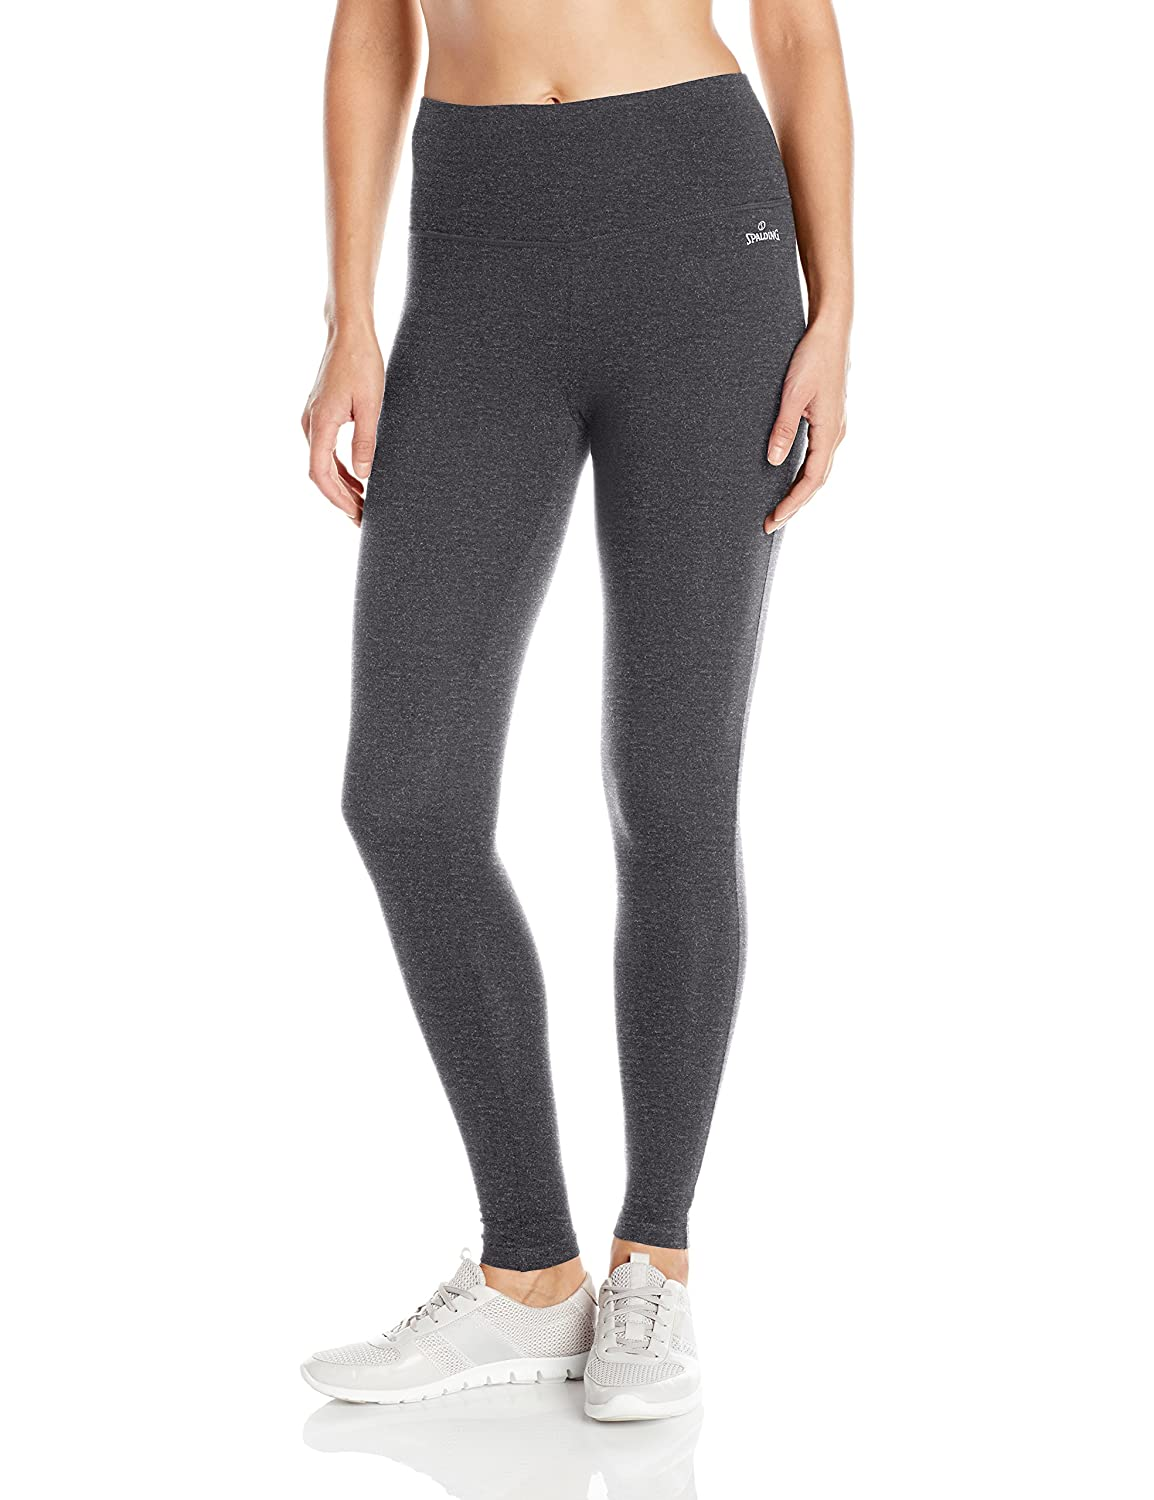 2283ff7d804d2 Spalding Womens High-Waisted Legging Leggings: Amazon.ca: Clothing &  Accessories